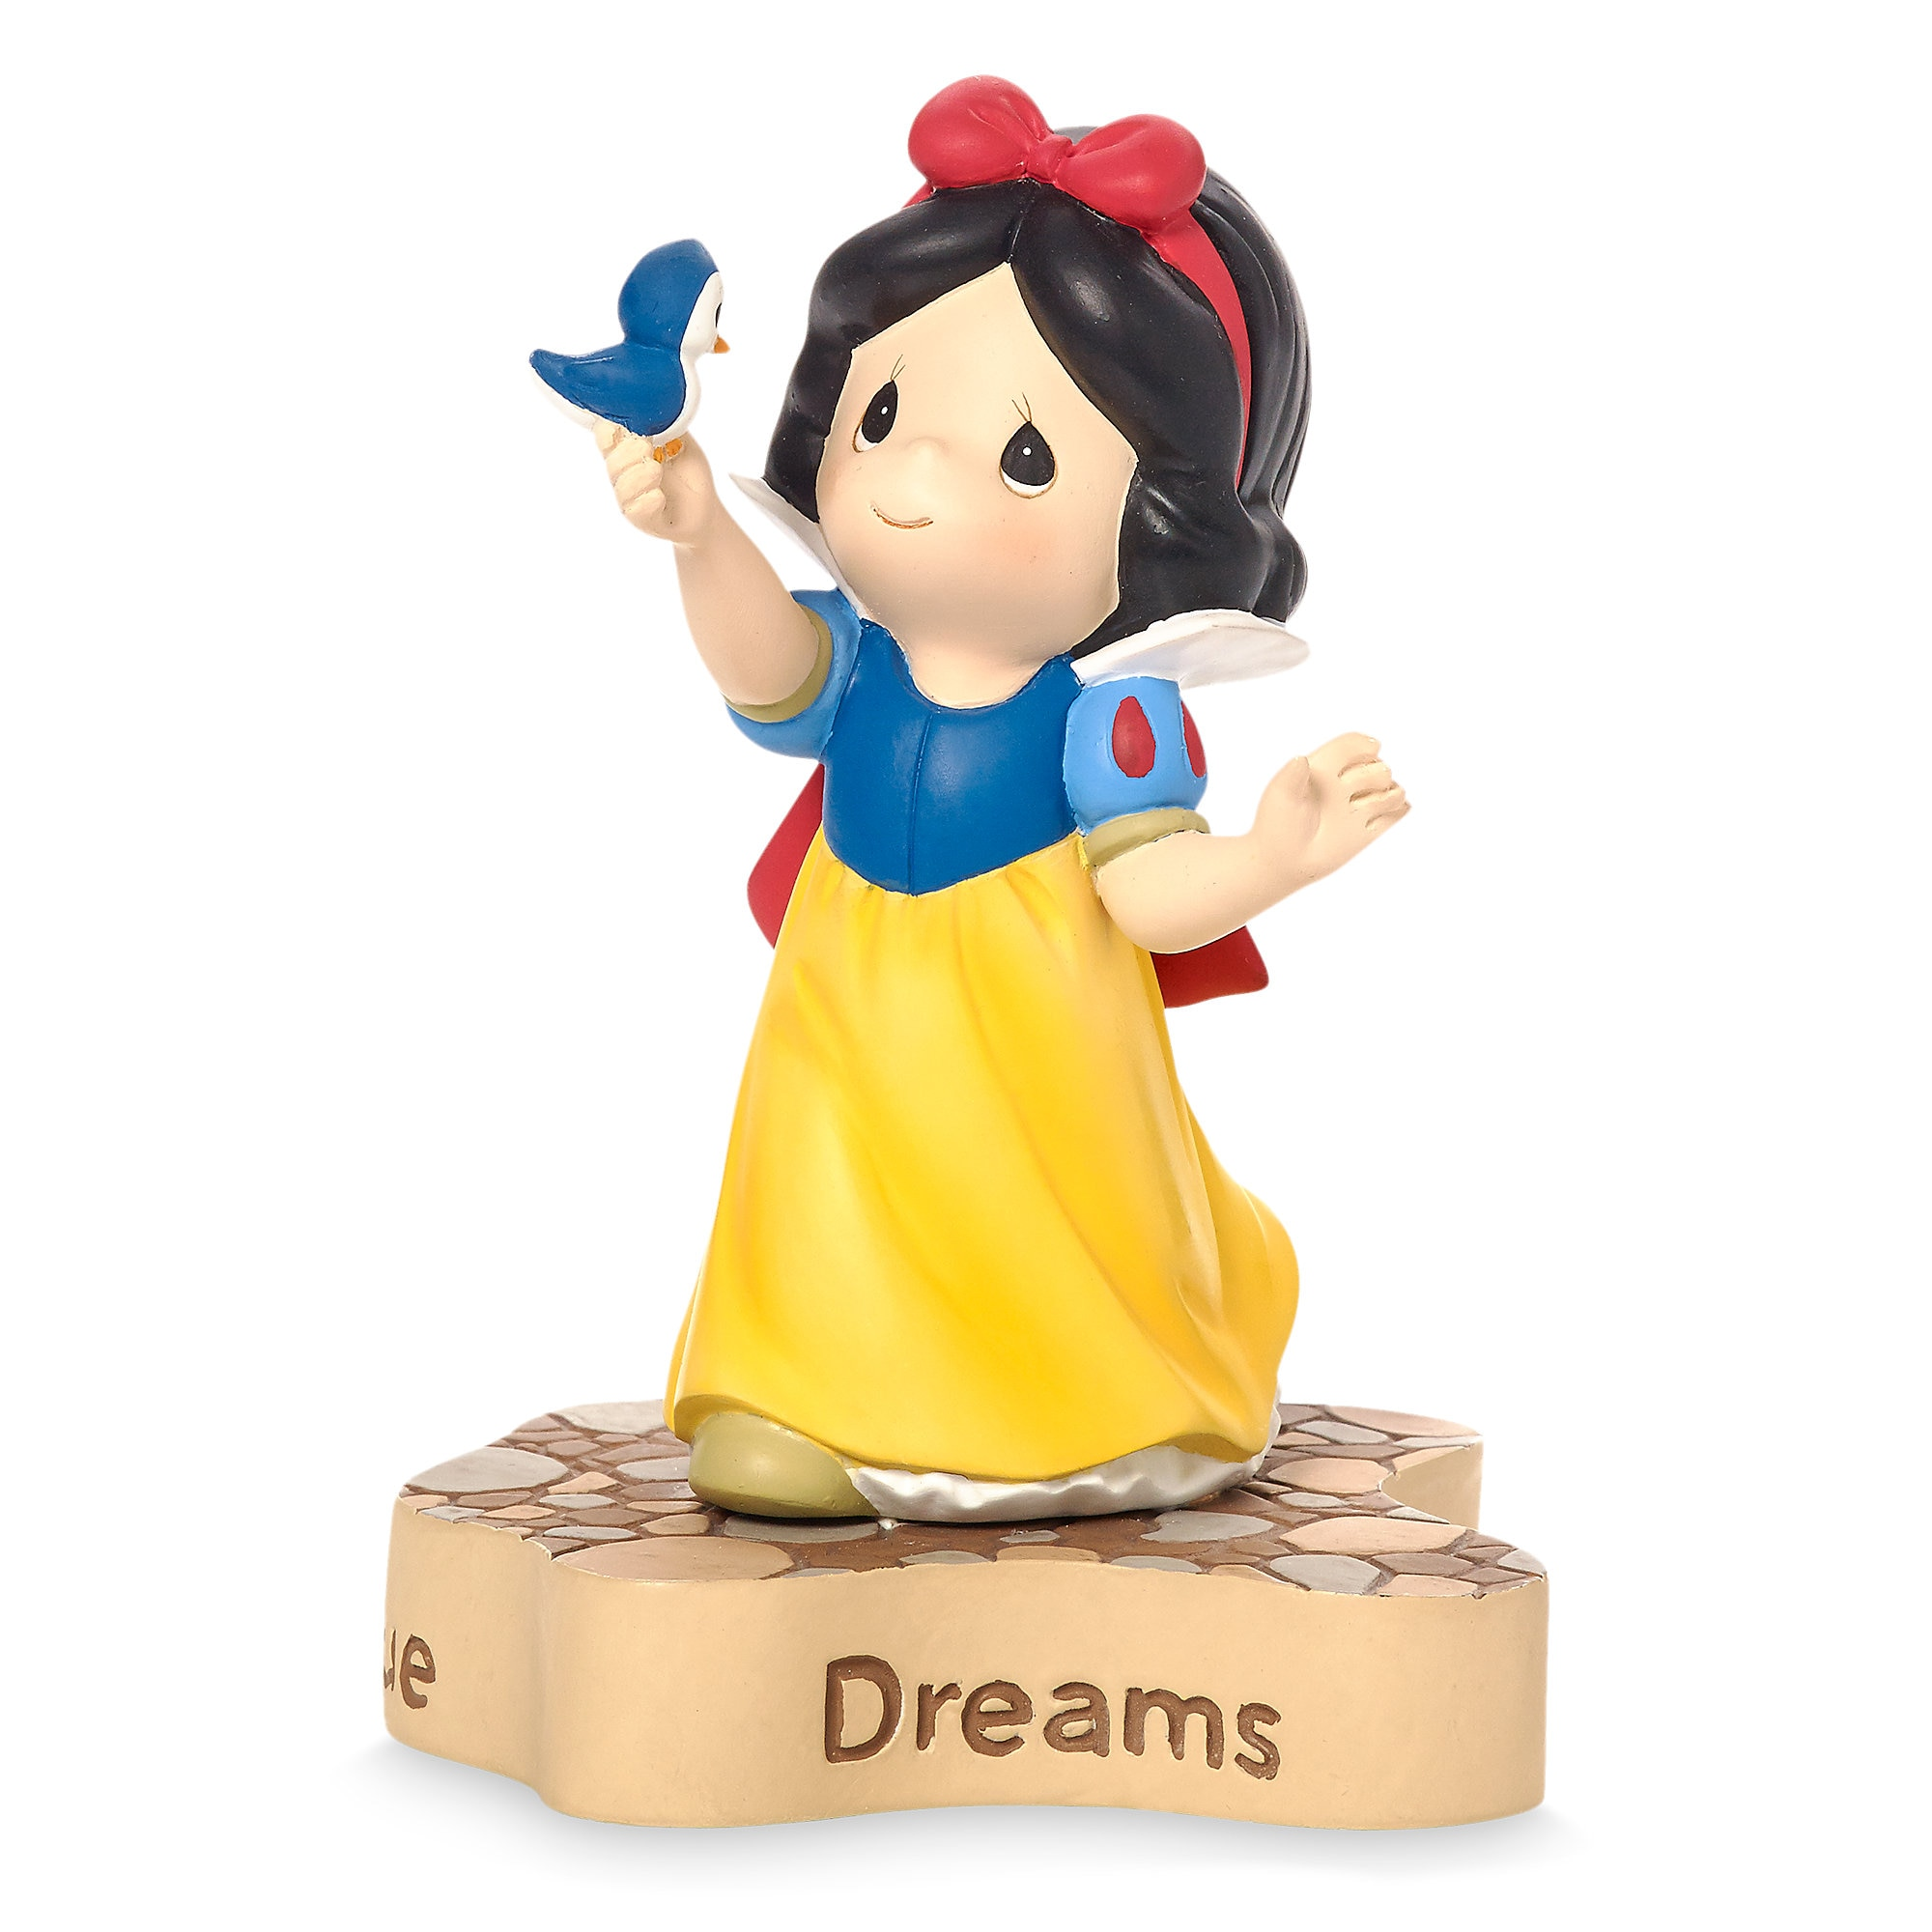 Snow White Figure by Precious Moments - ''Dreams'' Collection